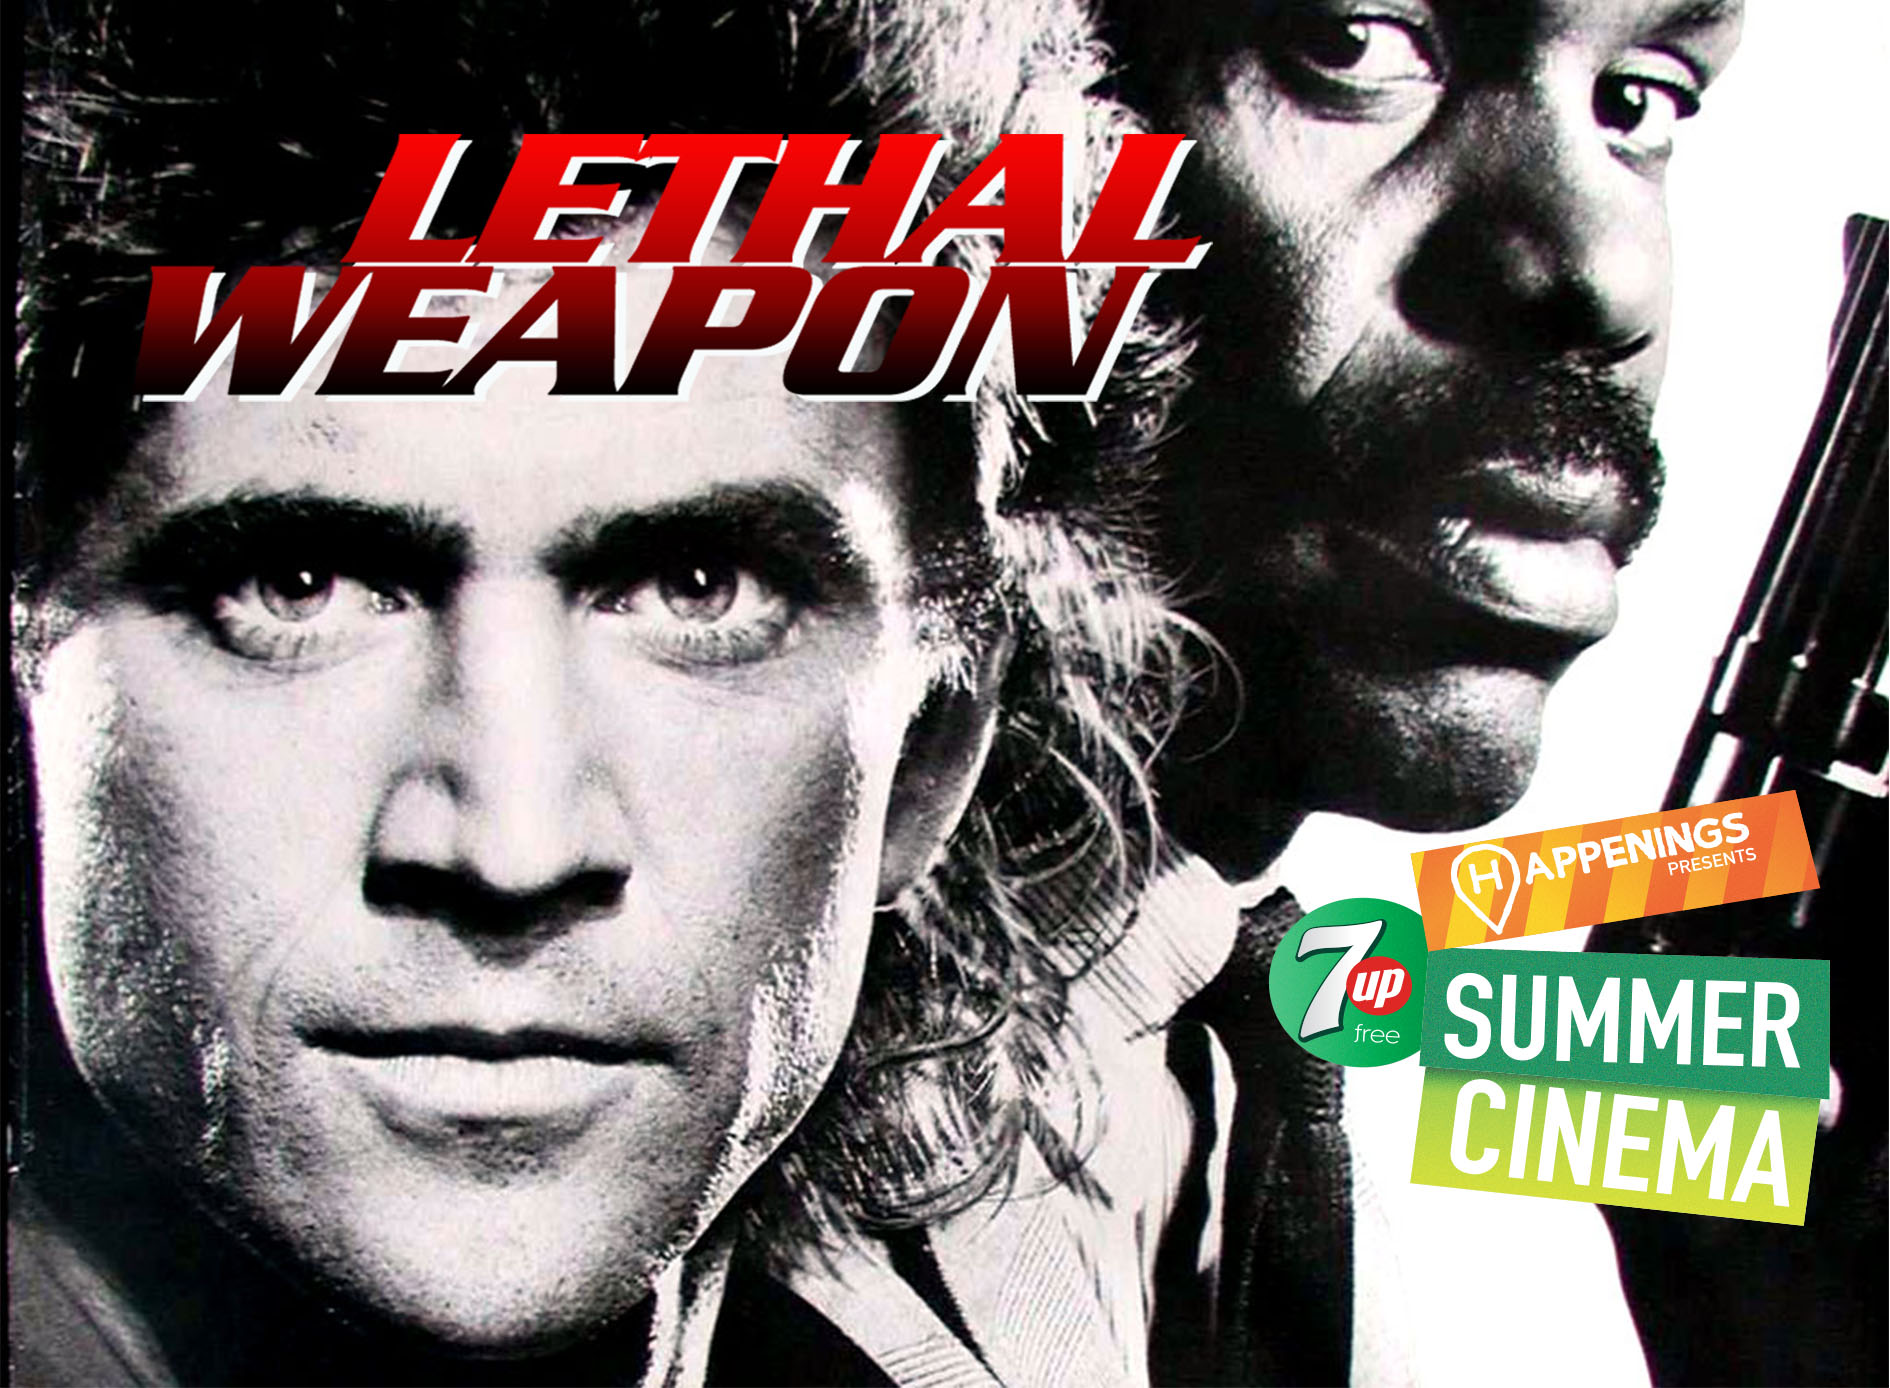 Lethal weapon files